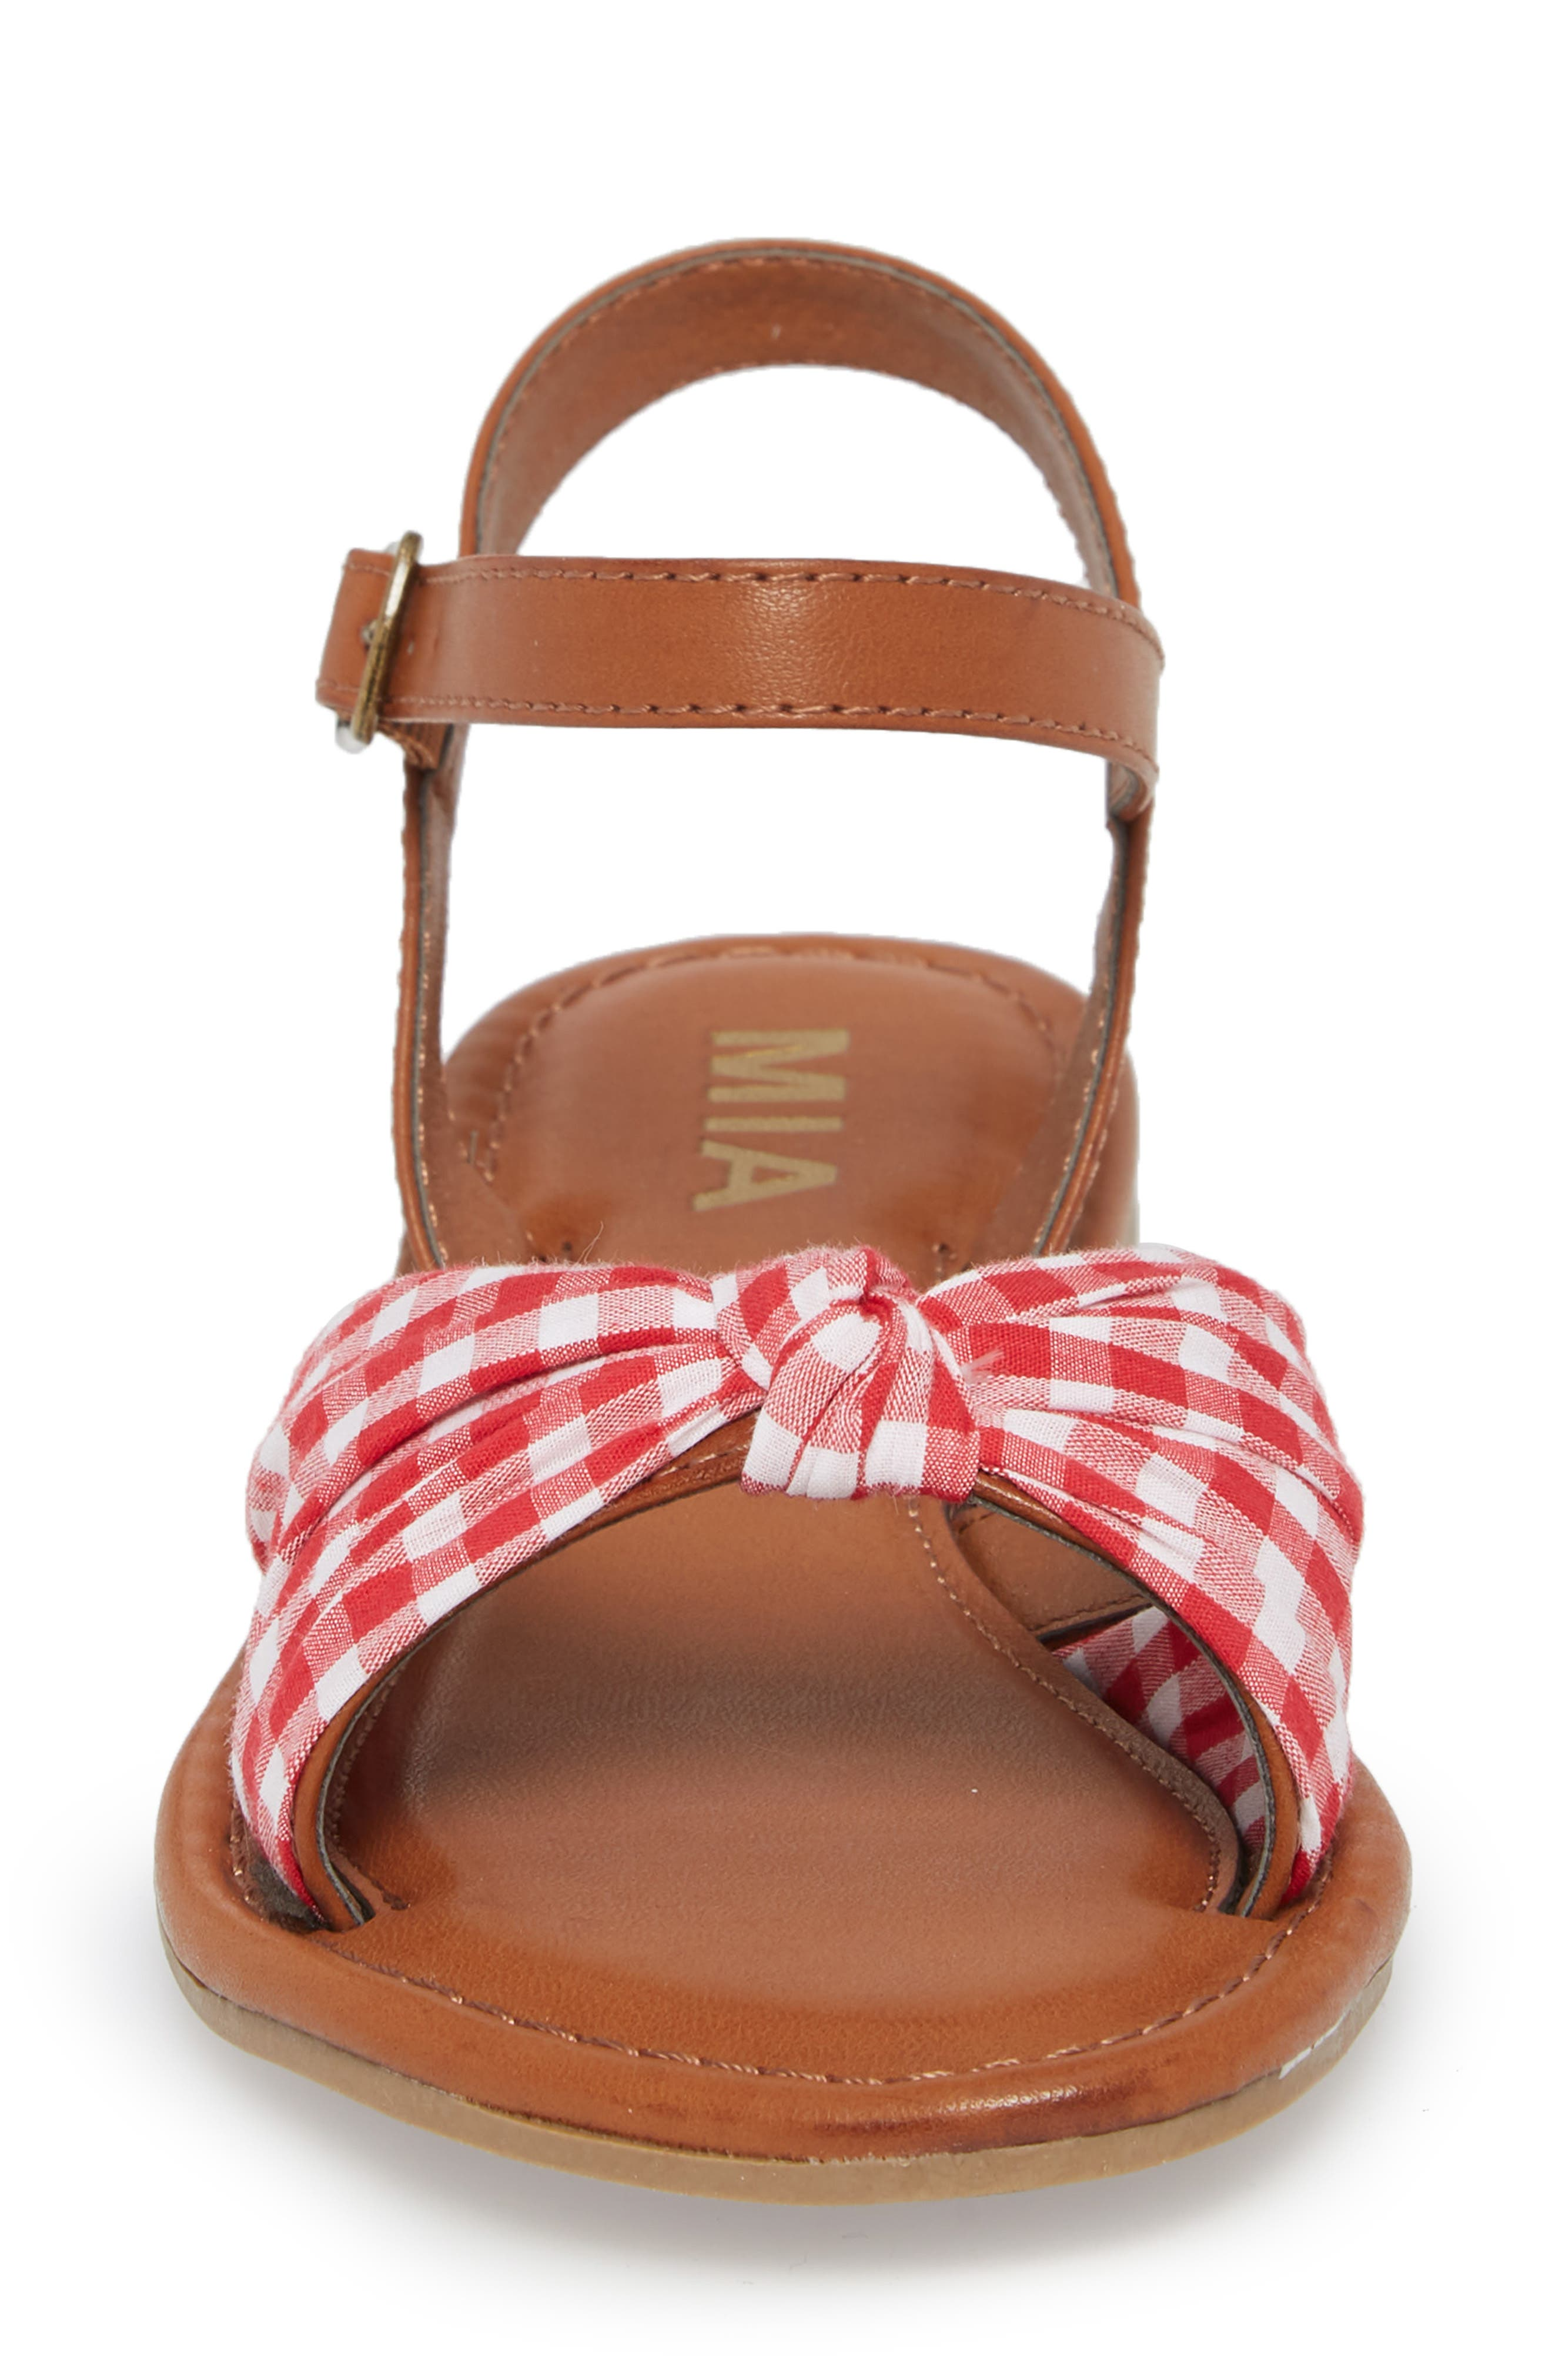 Neala Bow Sandal,                             Alternate thumbnail 4, color,                             Red/ White Fabric